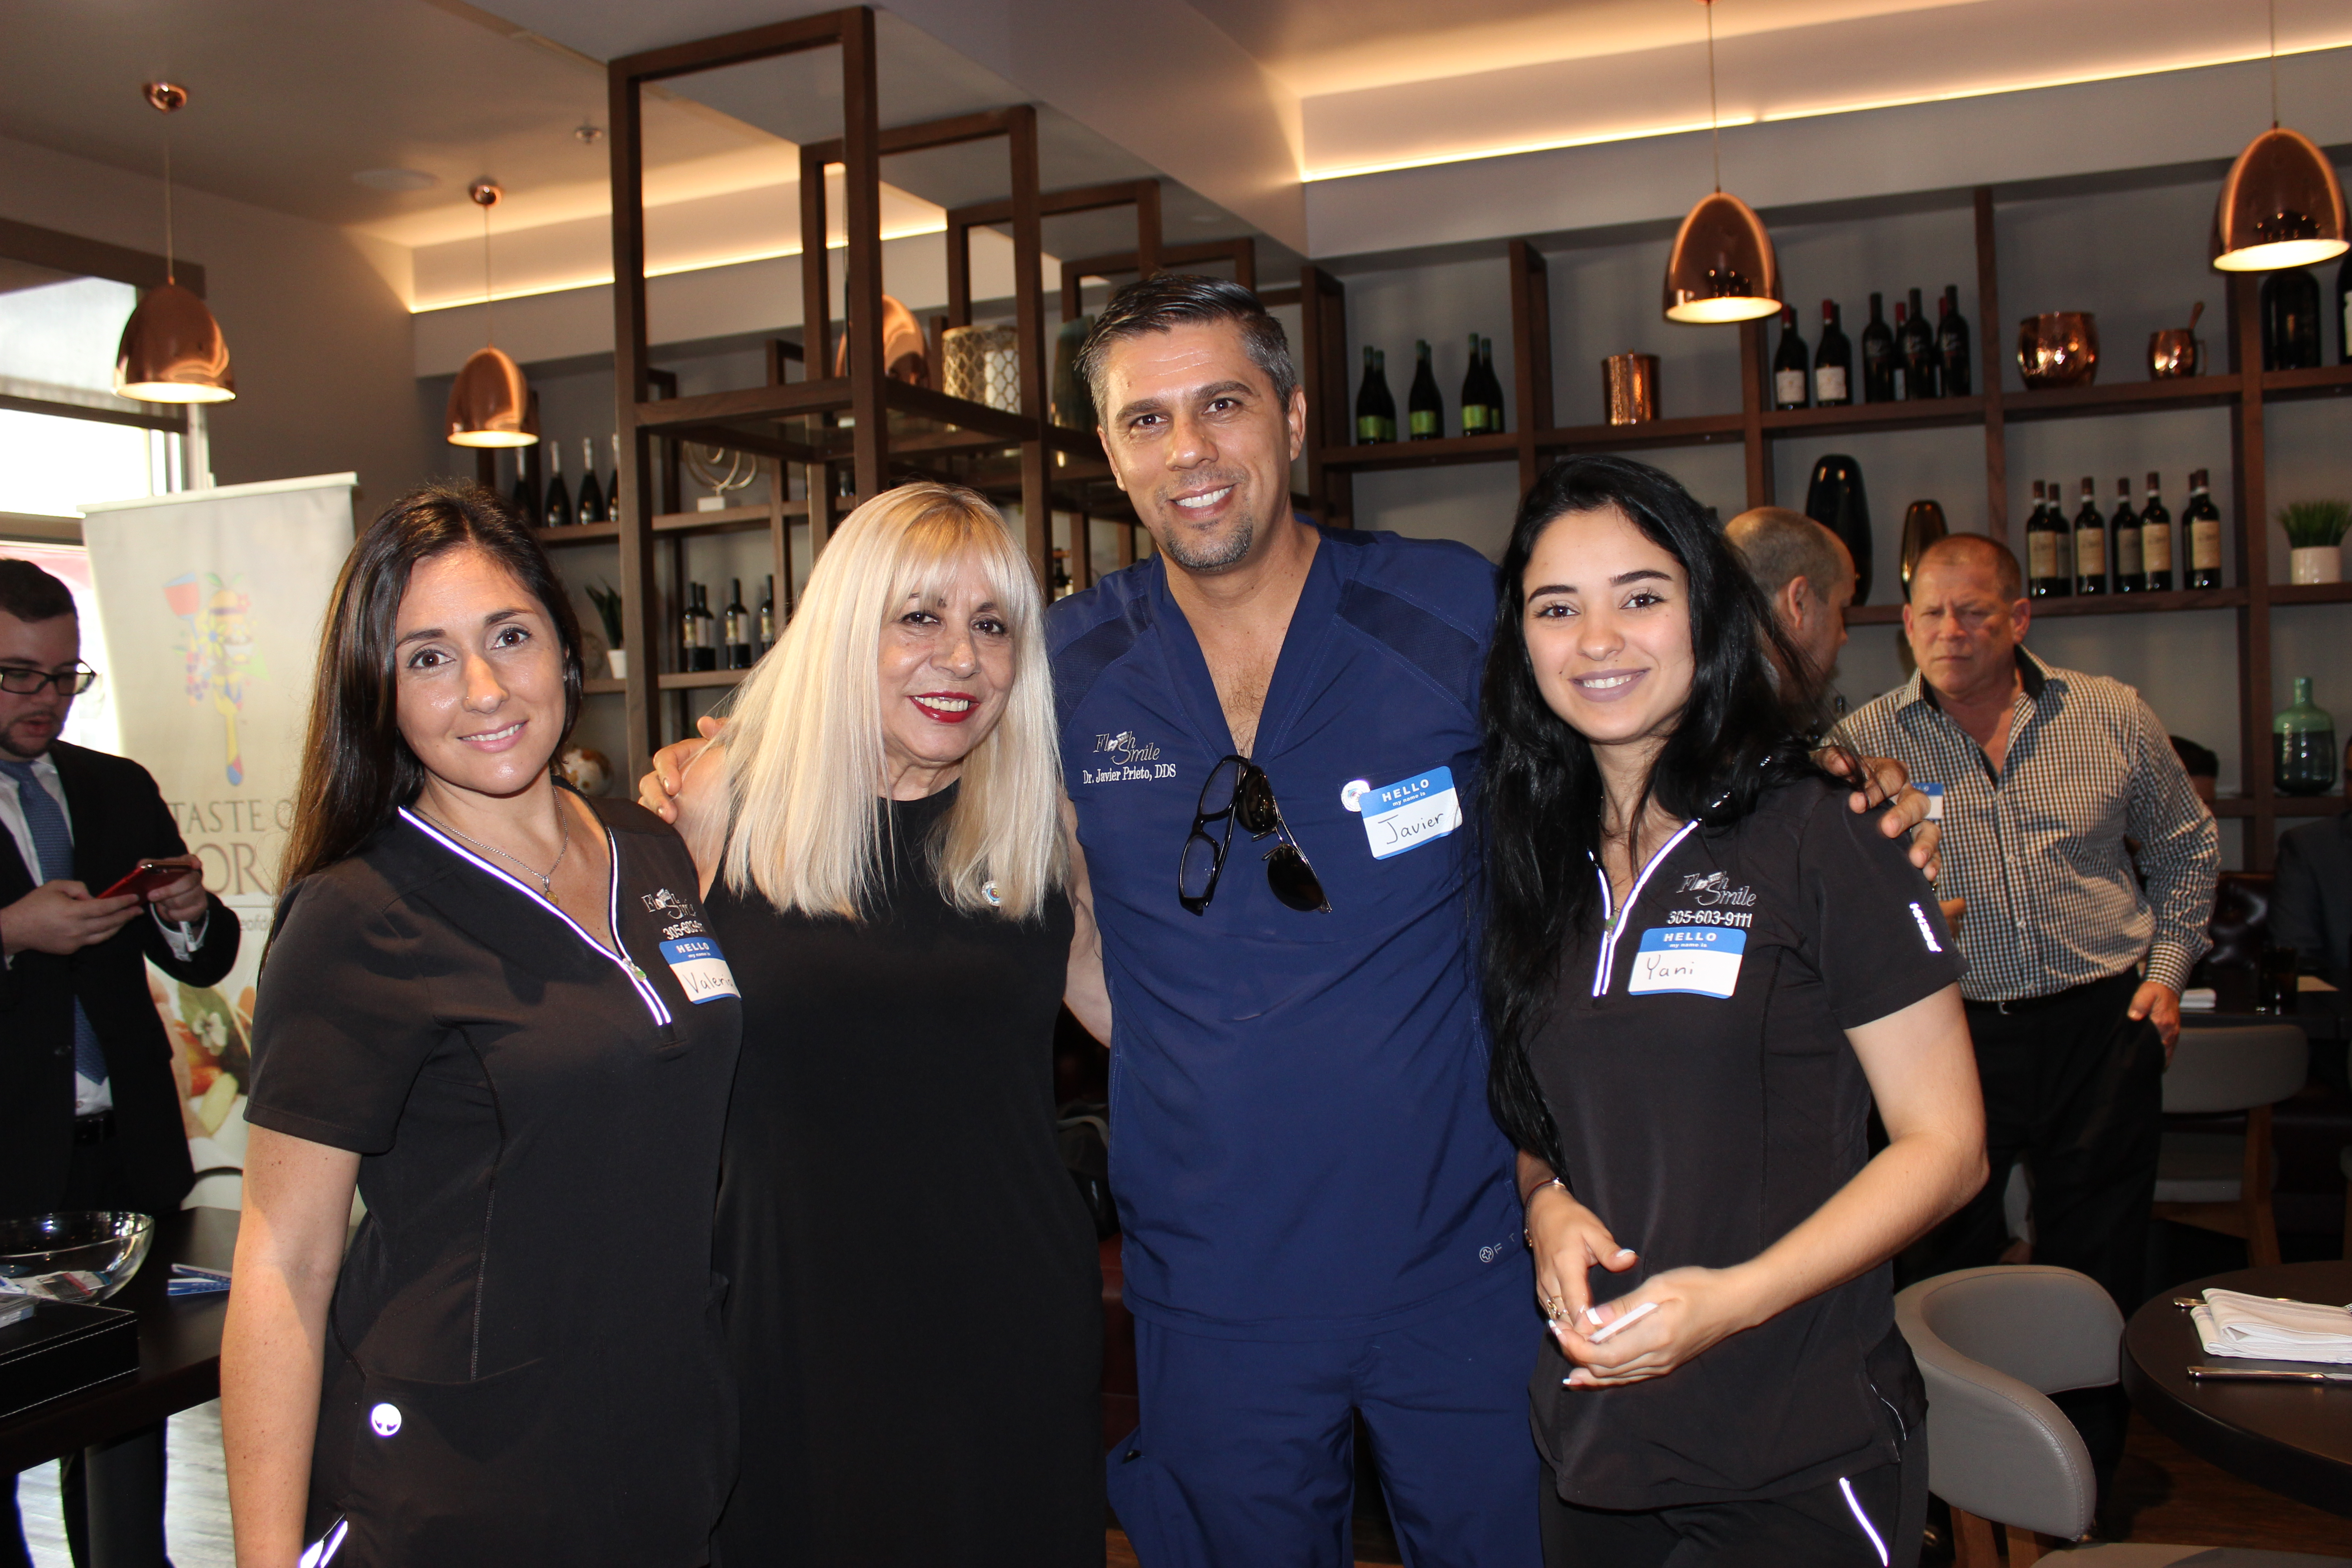 Doral Chamber of Commerce introduces Flash Smile Dental Dr. Javier Prieto in Gusto Ristobar Luncheon.